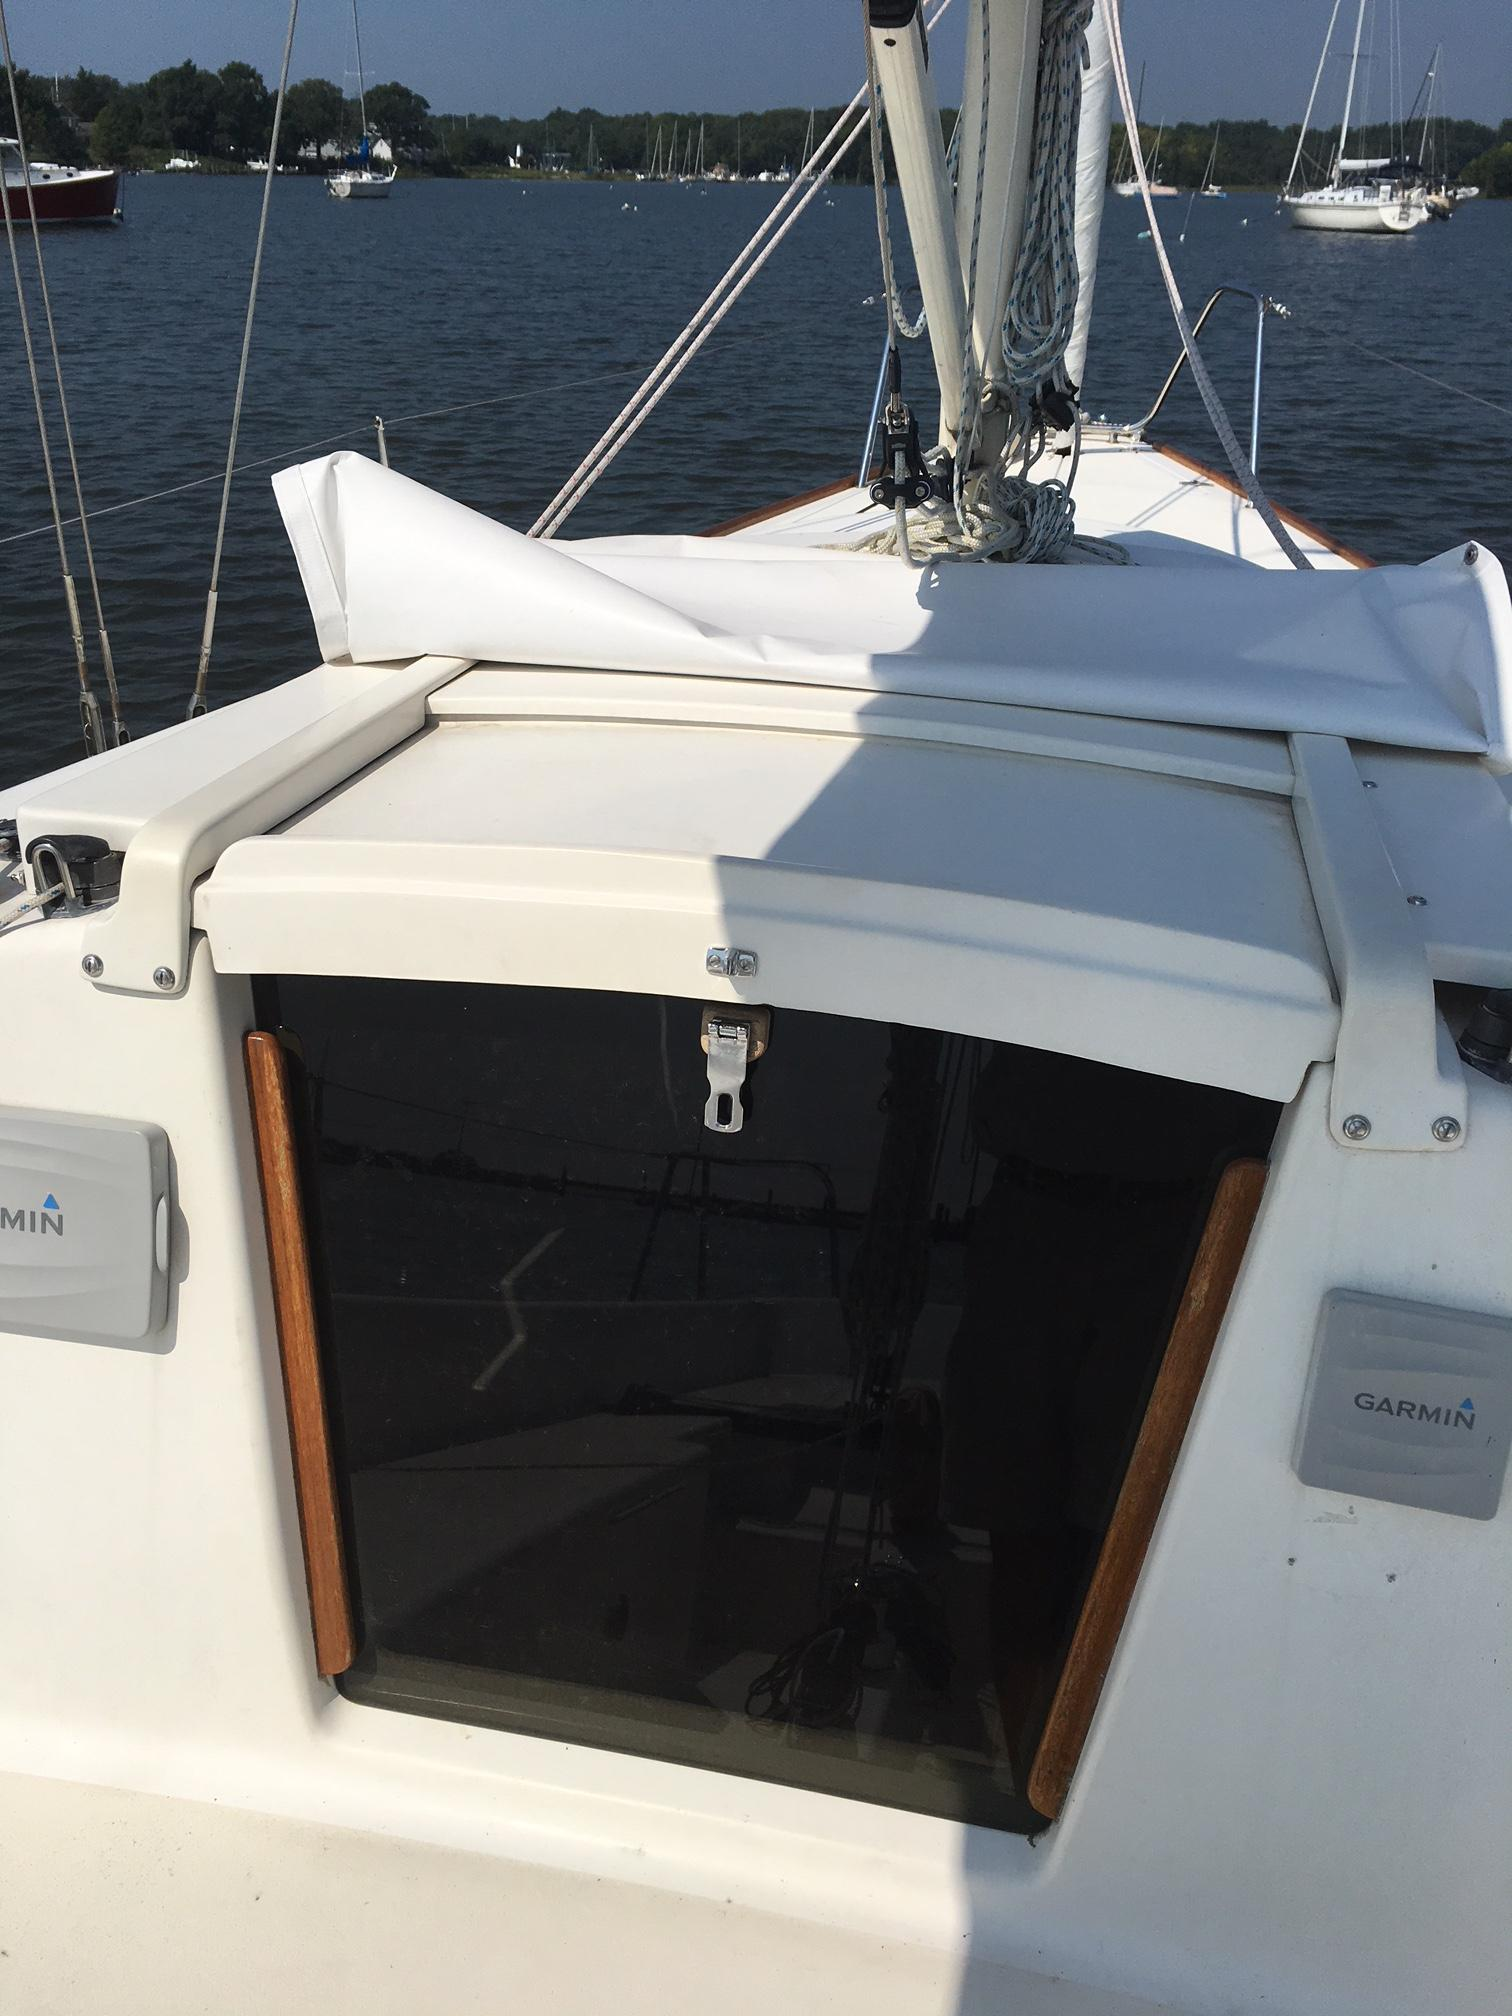 e74aaf2f2 Whimbrel Lyman-morse 2010 Esailing Yachts E33 33 Yacht for Sale in US